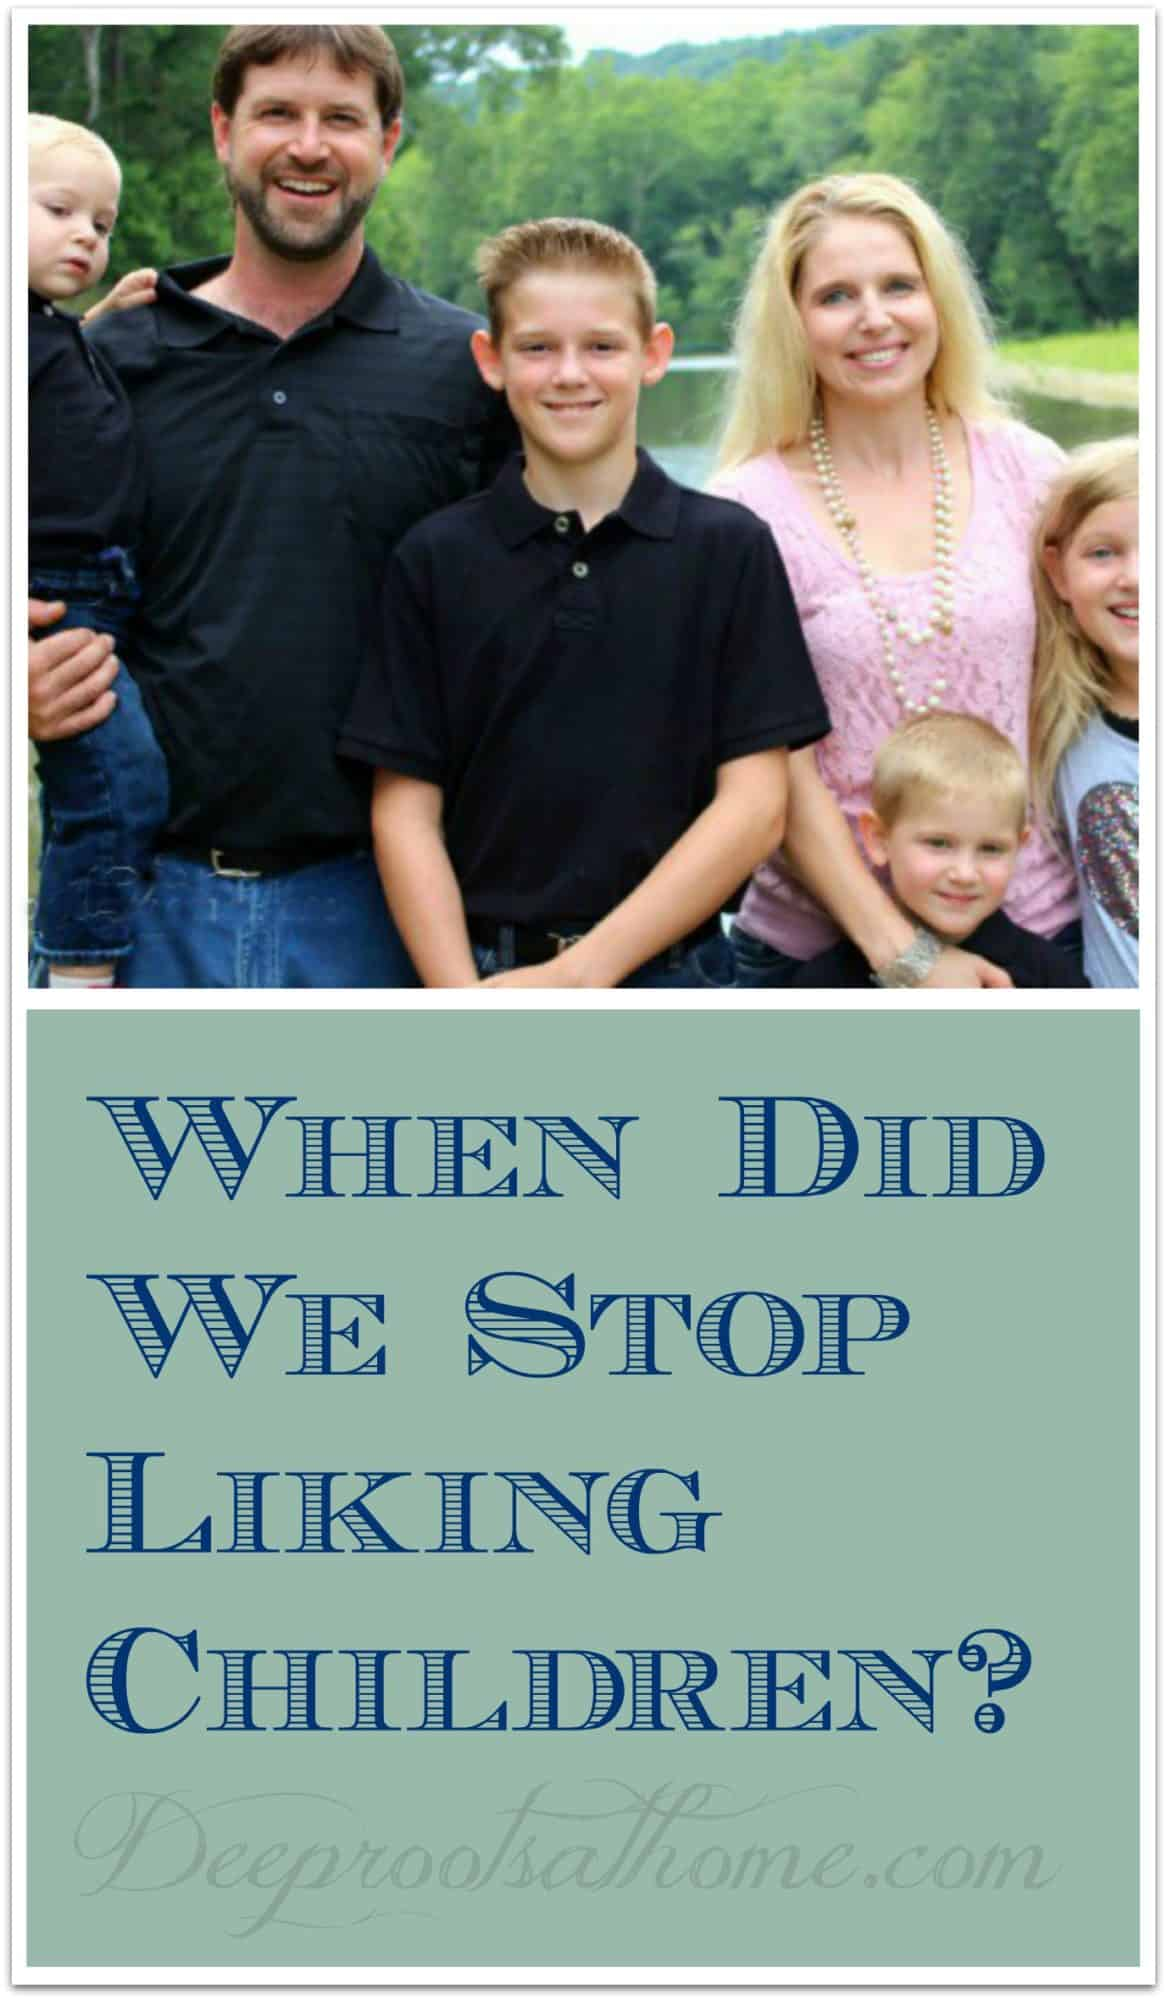 When Did We Stop Liking Children? The Platt family Pin Image